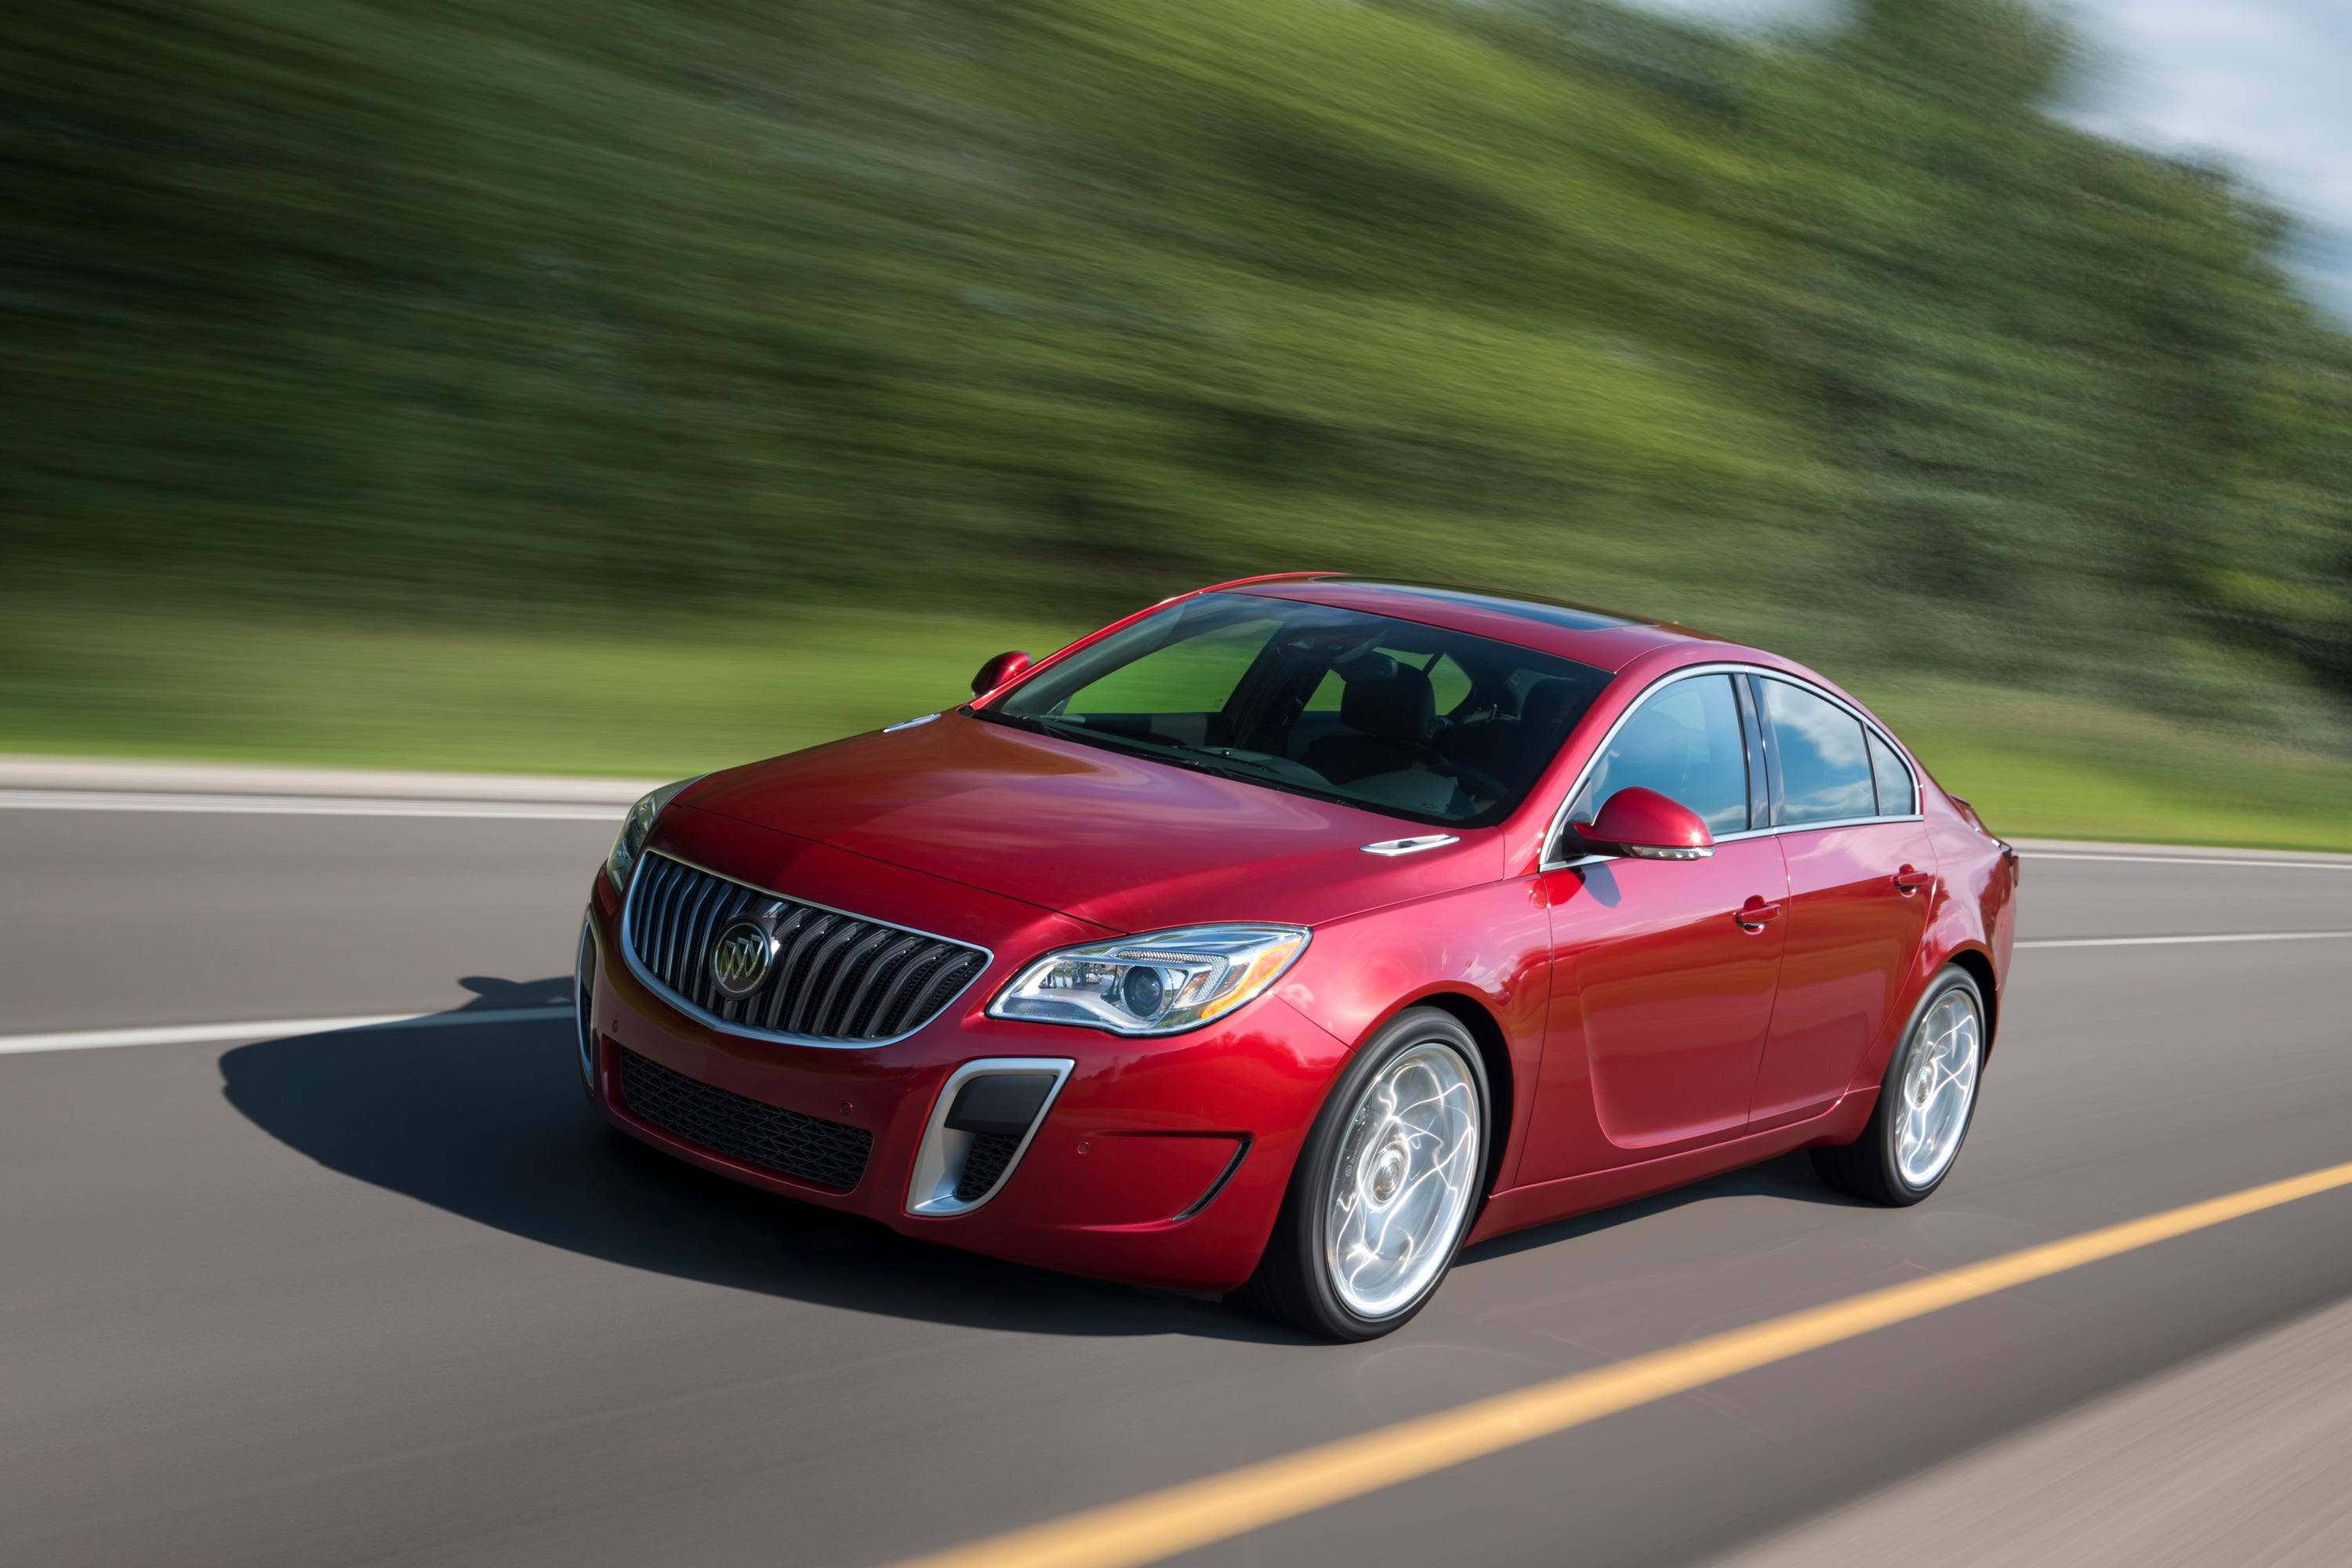 2015 Buick RegalGS 021(1)